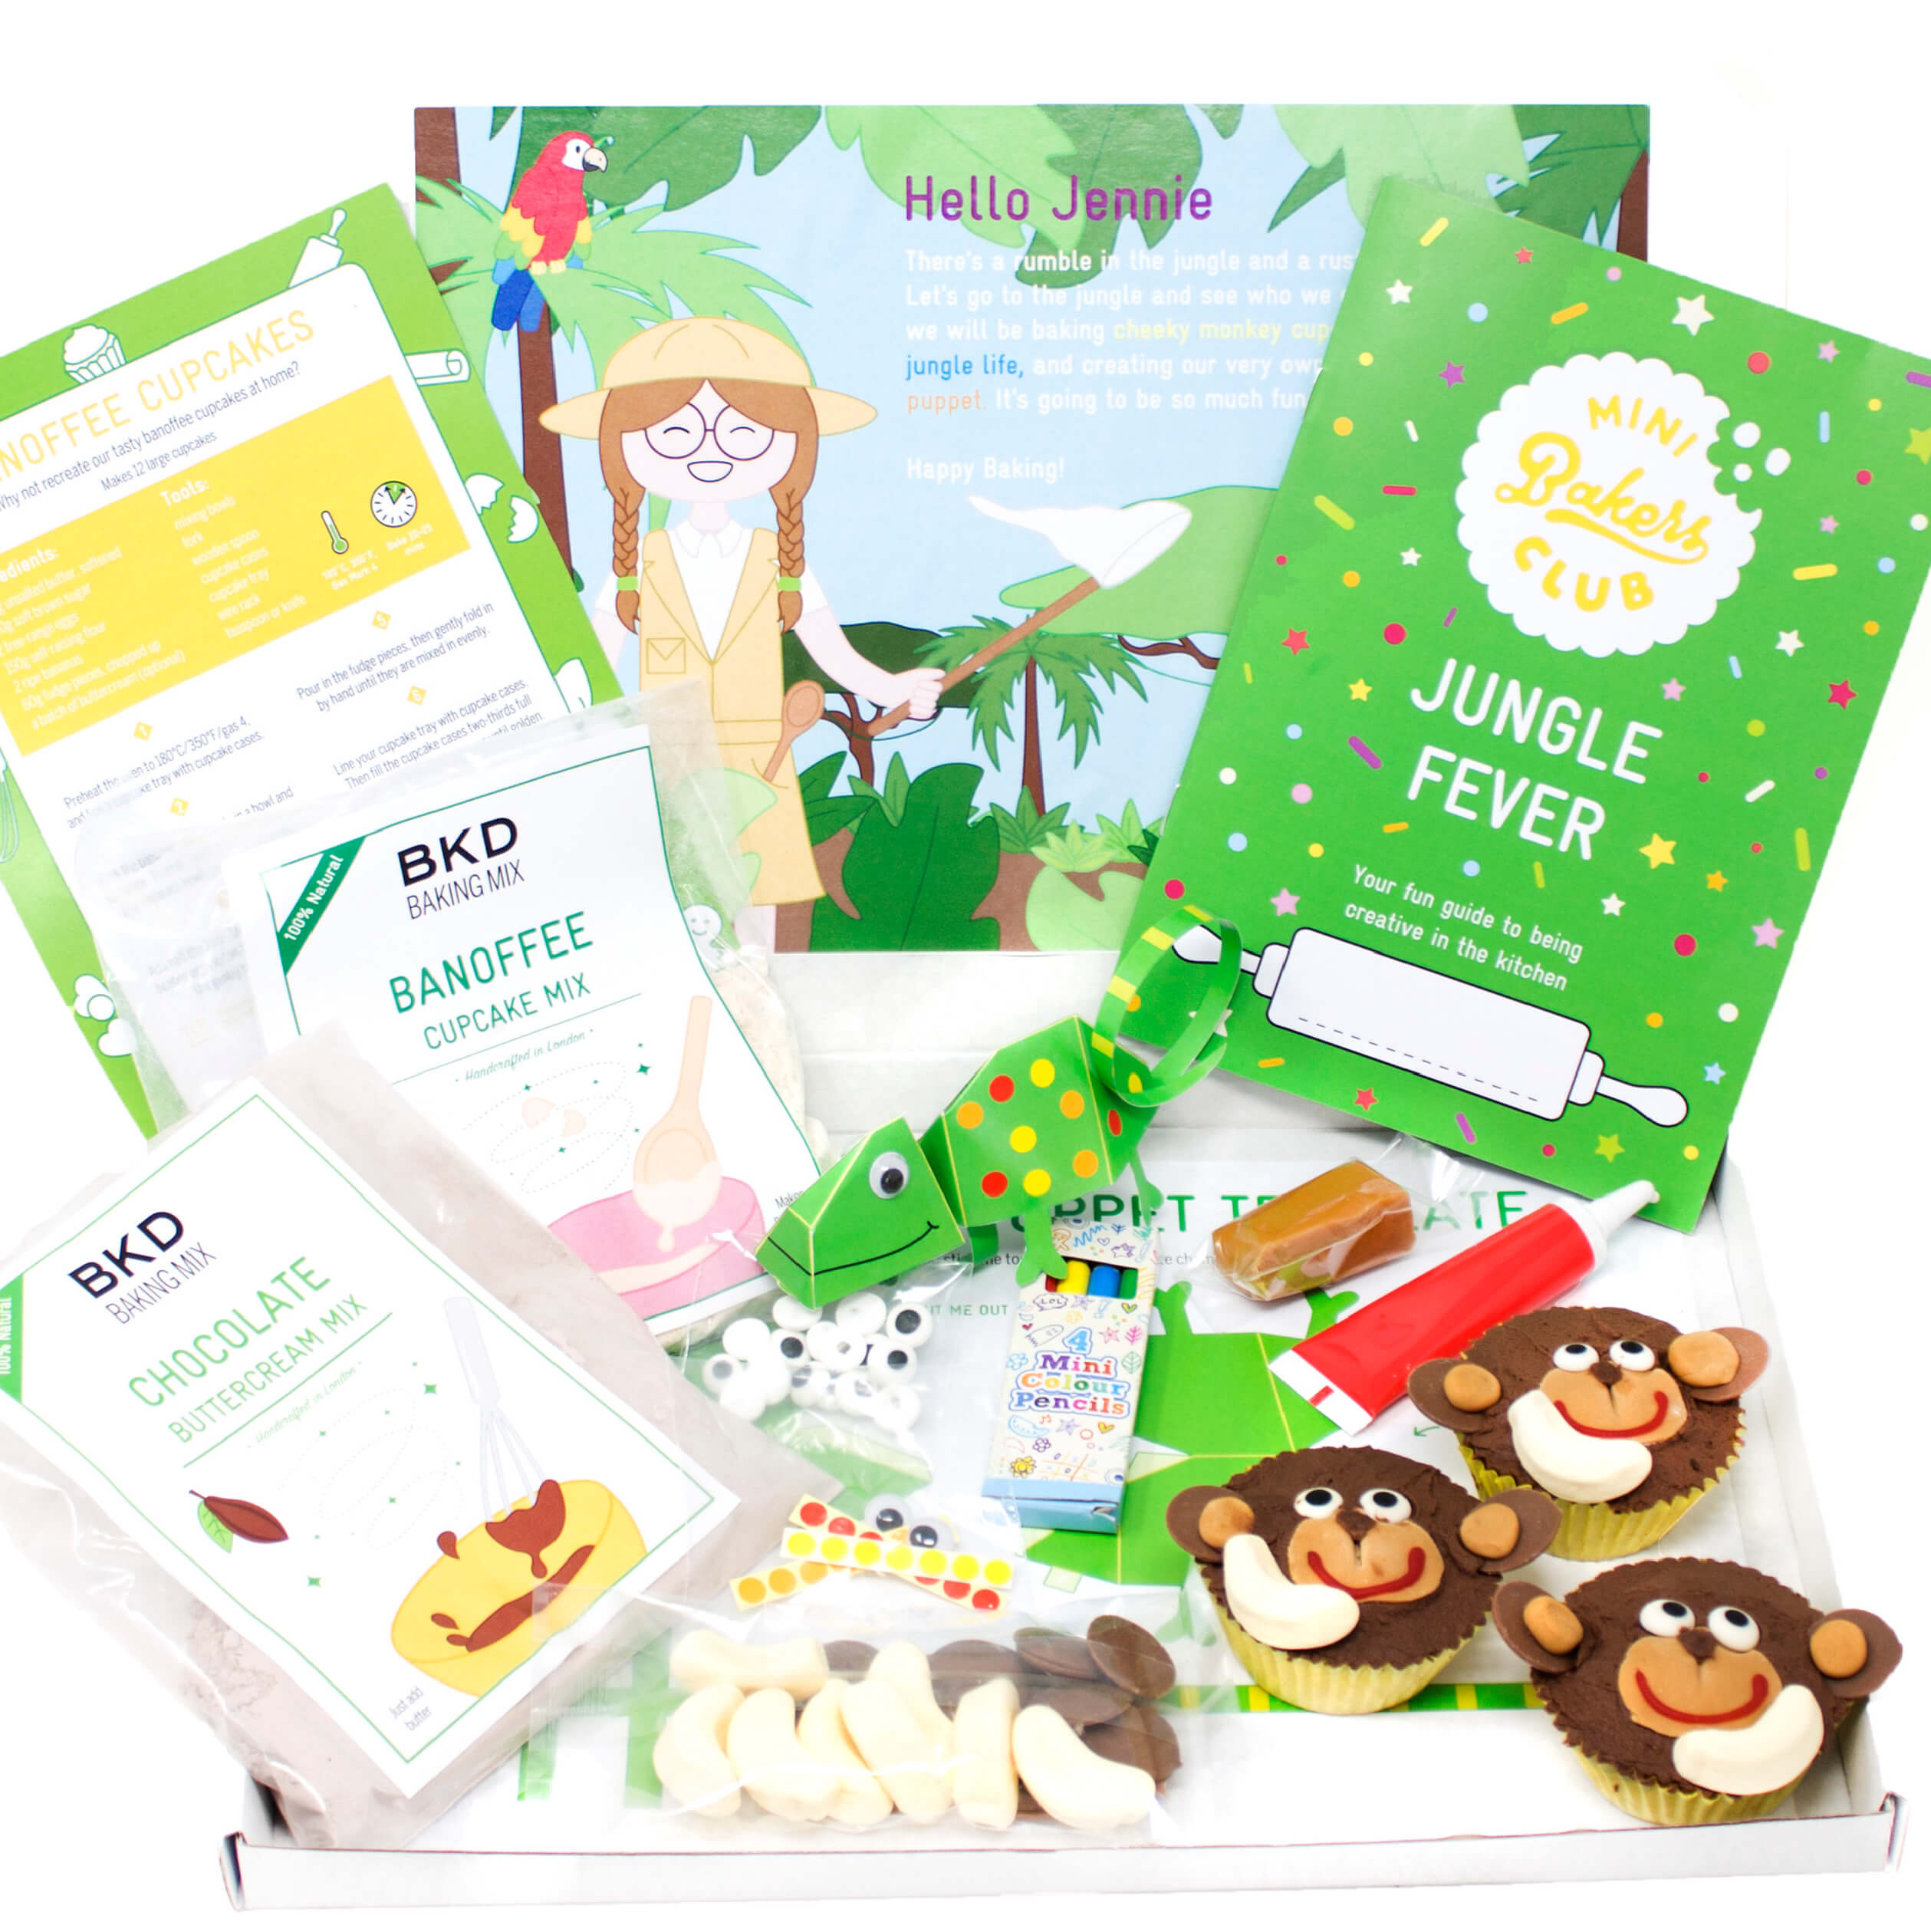 Mini Bakers Club | 12 Month Subscription - £109.92 - BKD